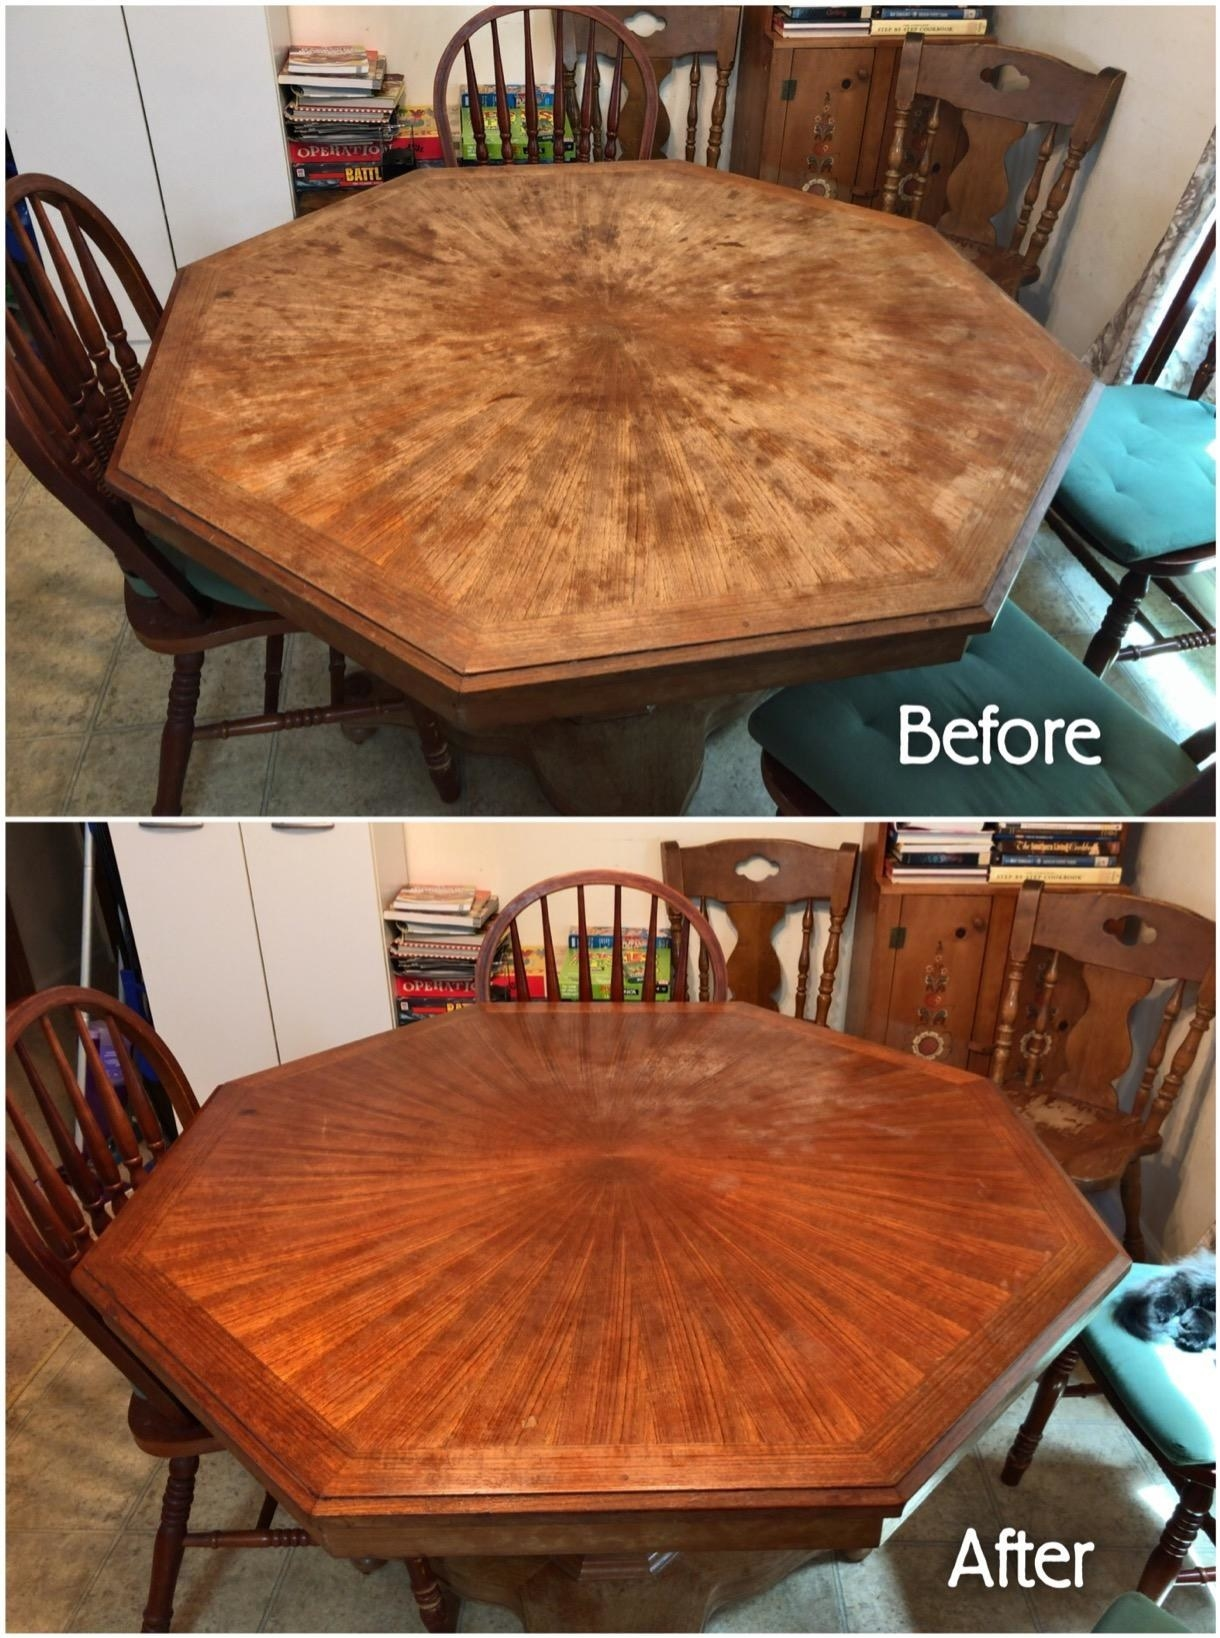 before the wood polish on top showing an ashy table and after the wood polish on the bottom showing a shiny table